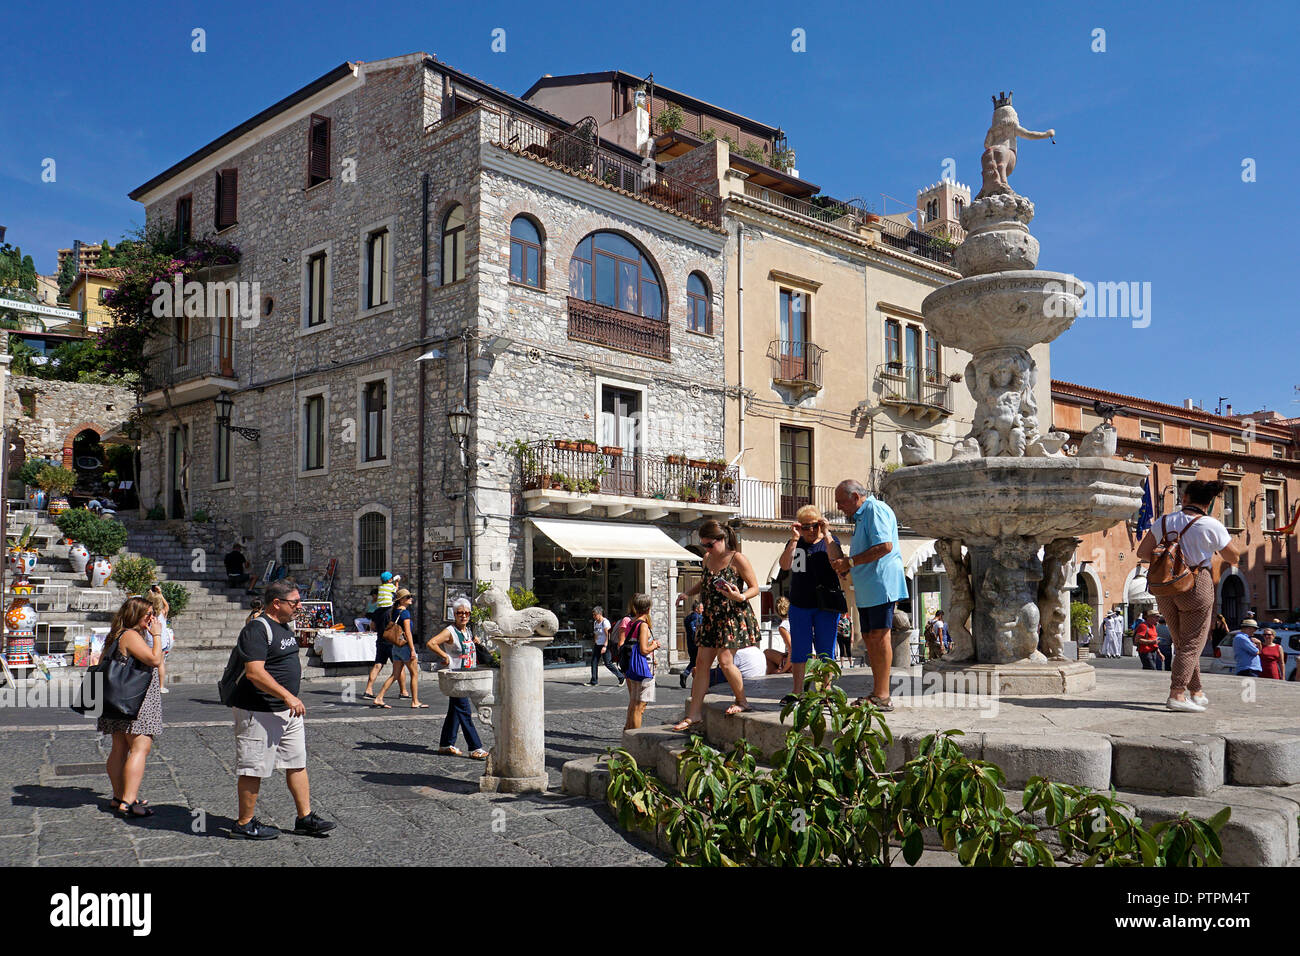 Baroque well at Piazza Duomo, old town of Taormina, Sicily, Italy Stock Photo